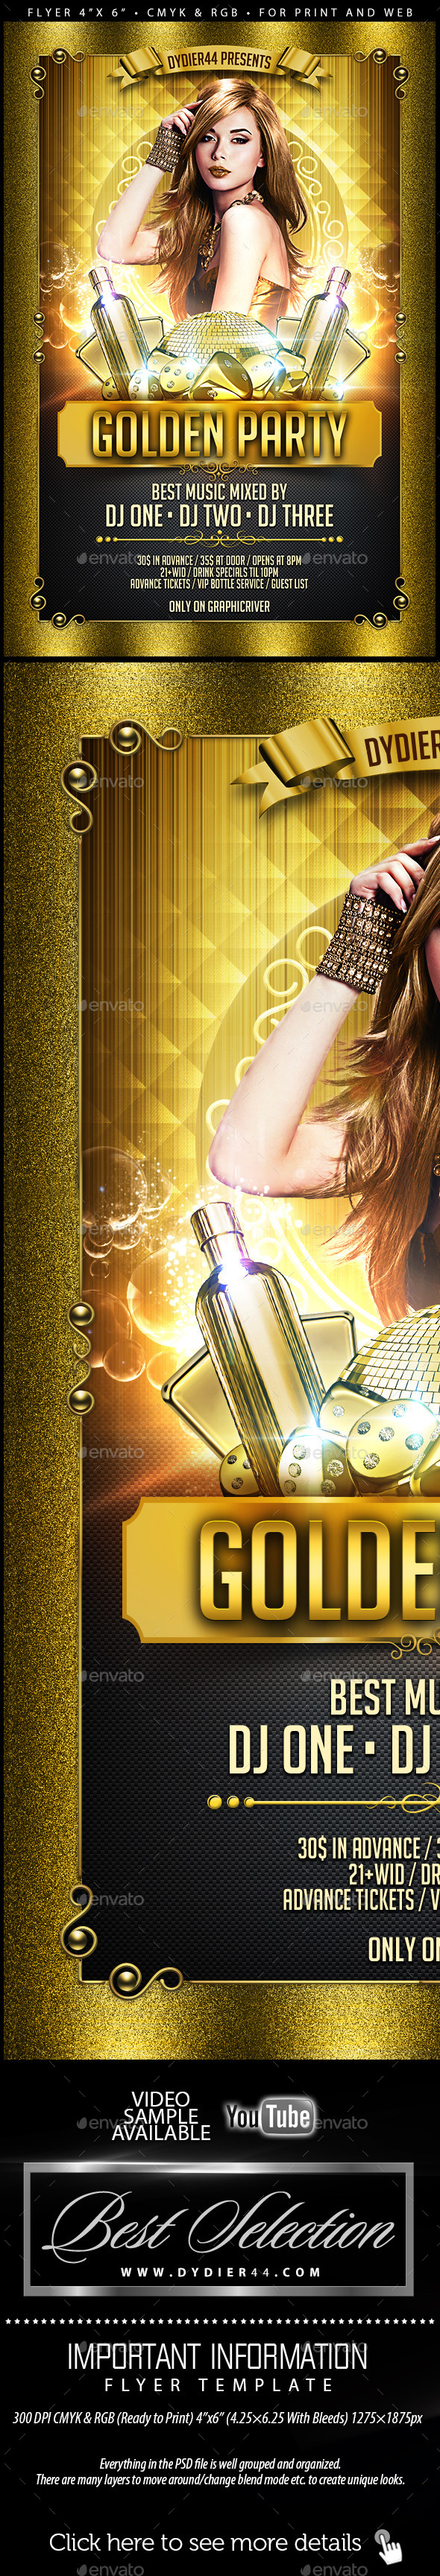 Golden Party Flyer Template 4x6